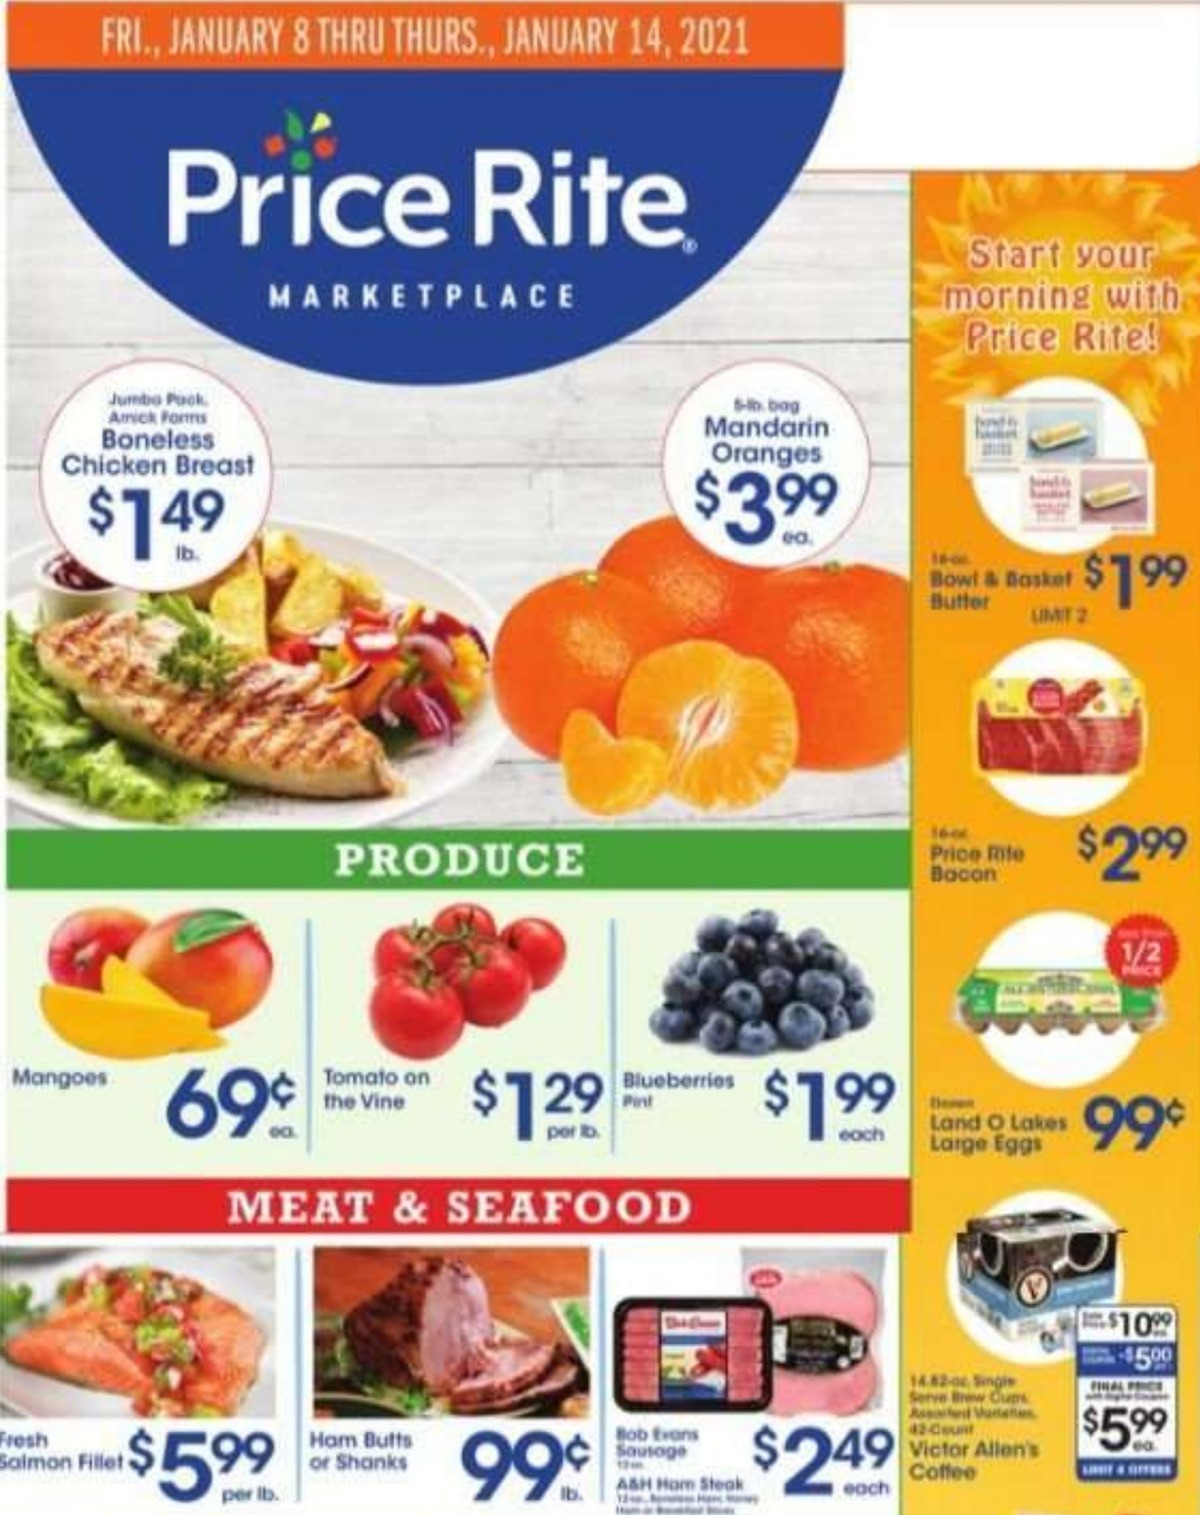 Price Rite Weekly Ad from January 8